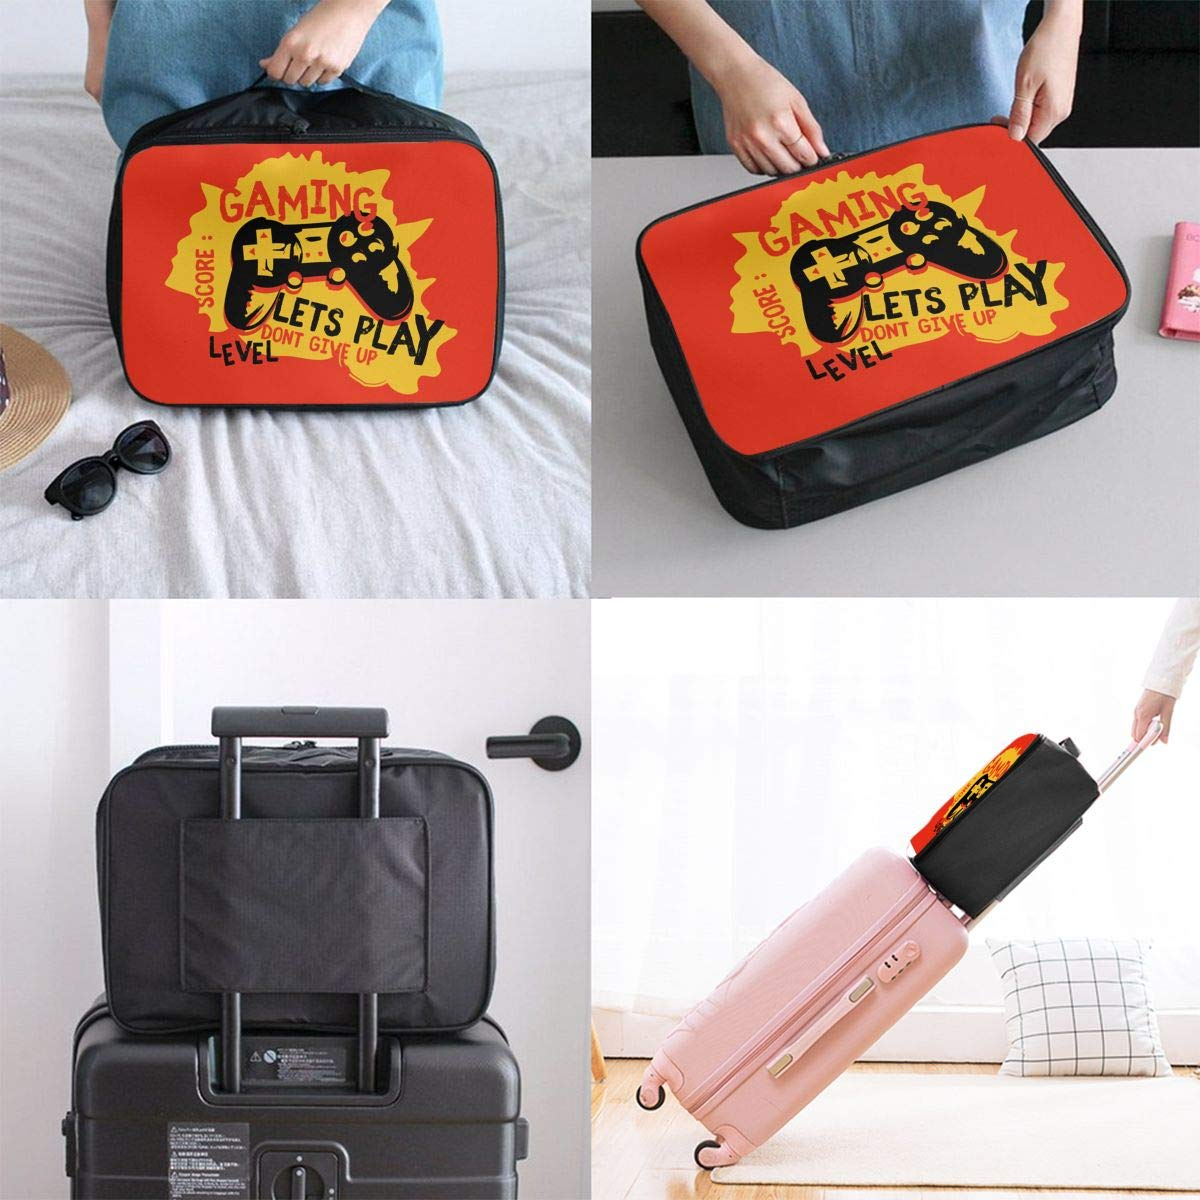 Travel Duffel Bag Waterproof Lightweight Large Capacity Travel Bag Joypad Gaming Portable Carry On Luggage Bag For Travel Camping Sport White